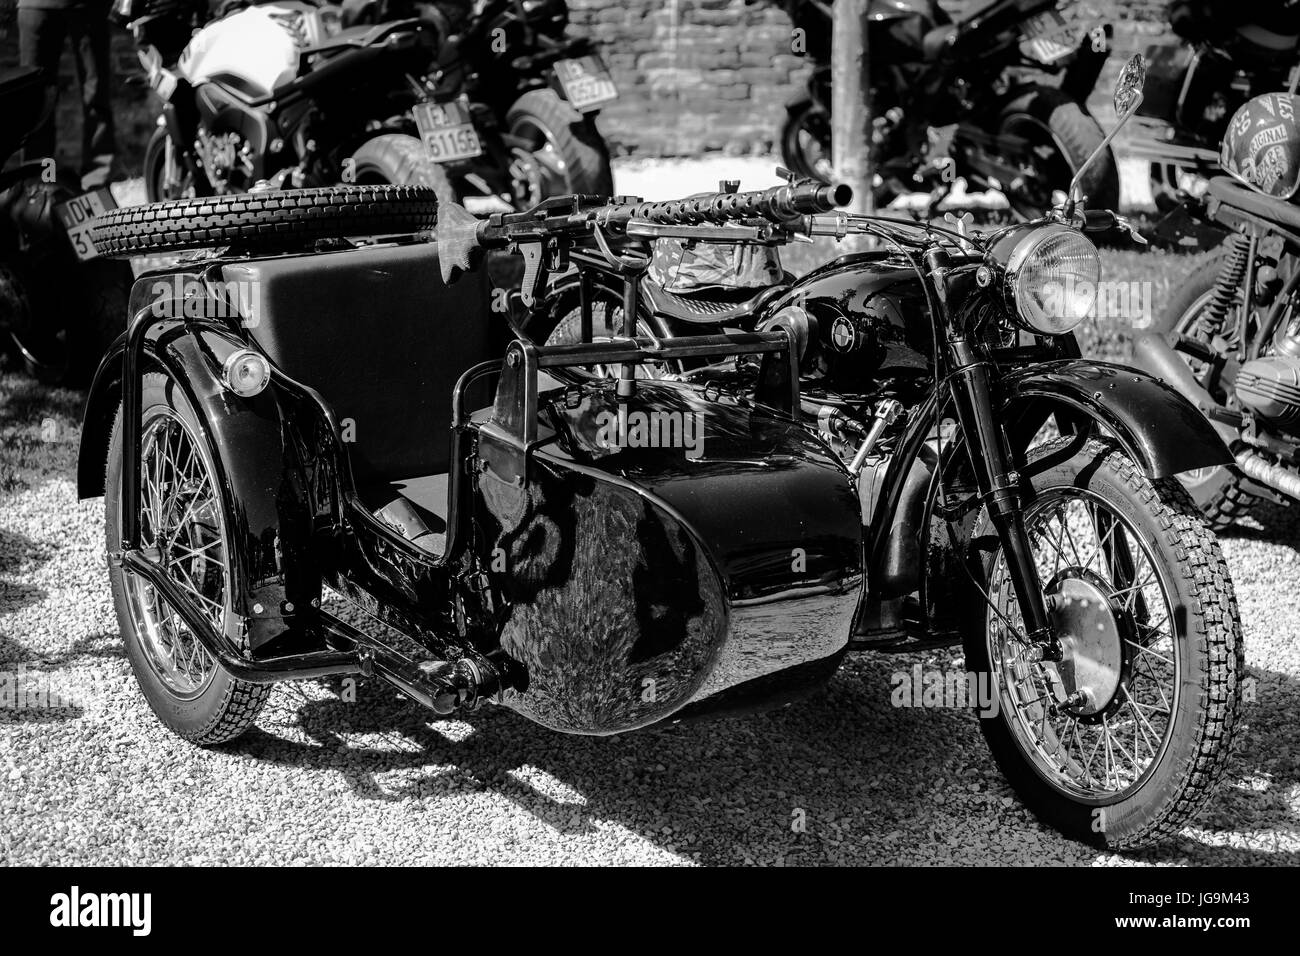 Beautiful, old, personalized military motorcycle BMW R71 after renovation on a motorcycles meeting. Black and white. - Stock Image